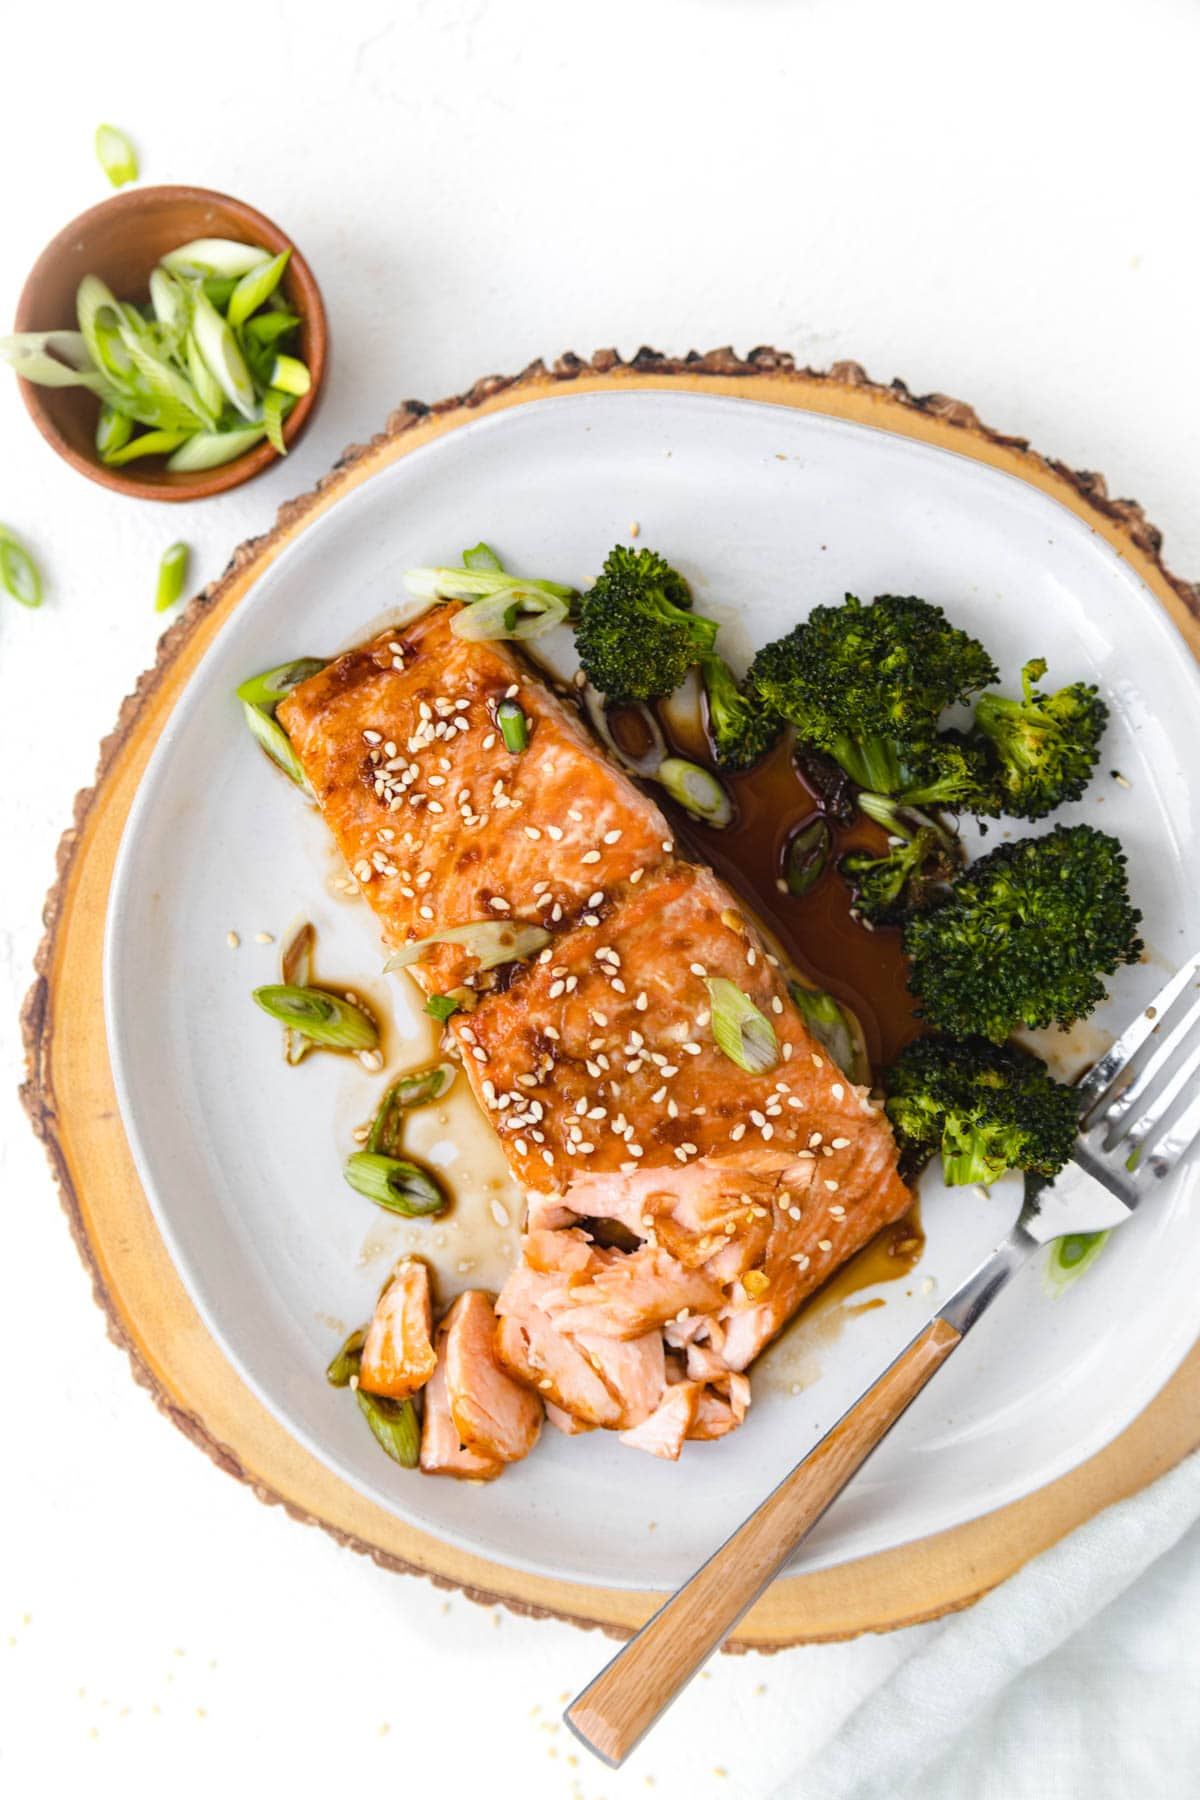 salmon on a plate with broccoli and fork. Sauce dripping off the salmon onto the plate.